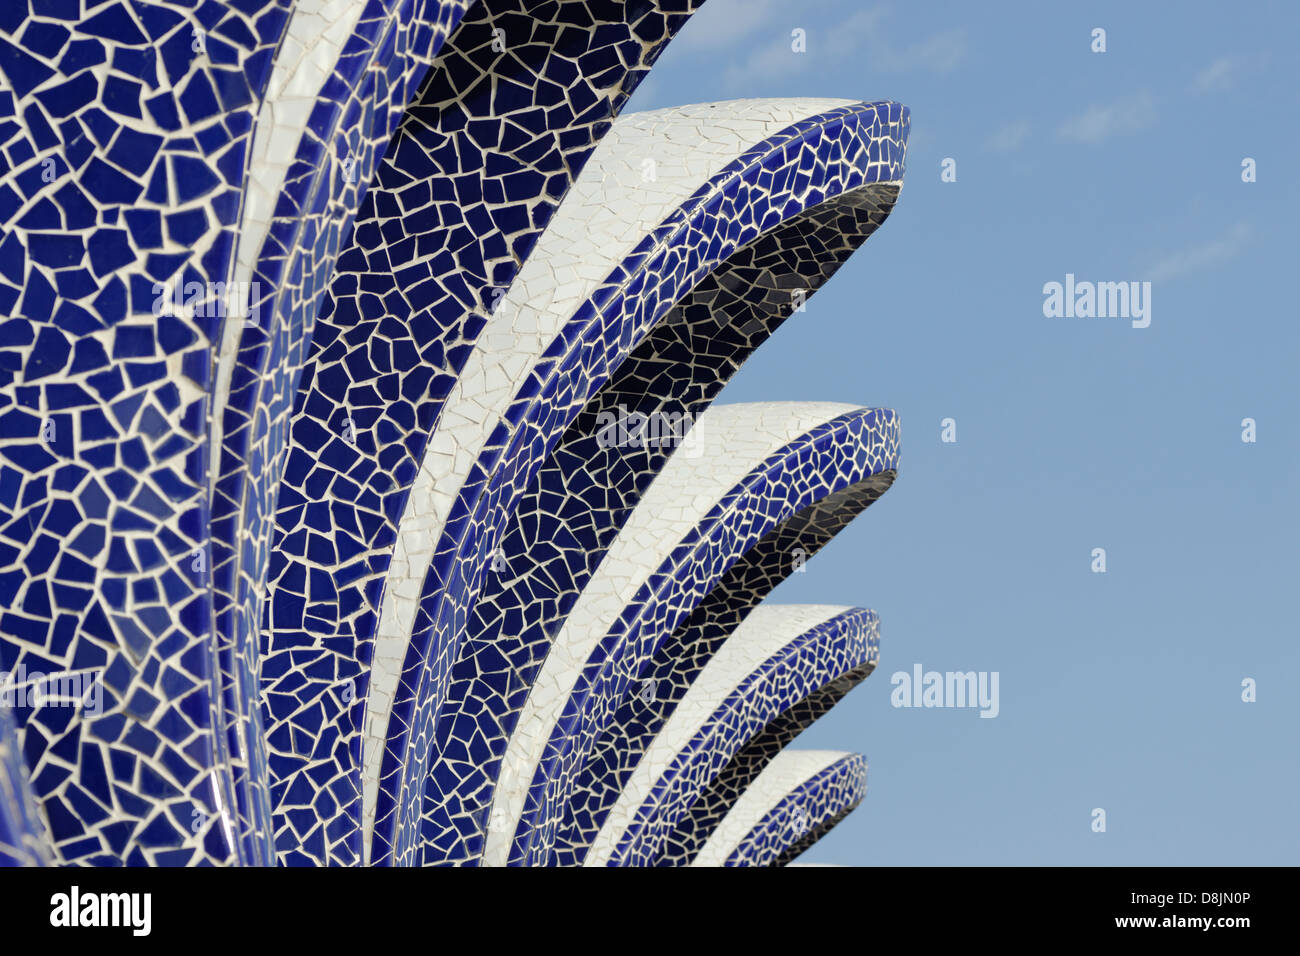 L'Umbracle, City of Arts and Sciences, Valencia, Spain - Stock Image